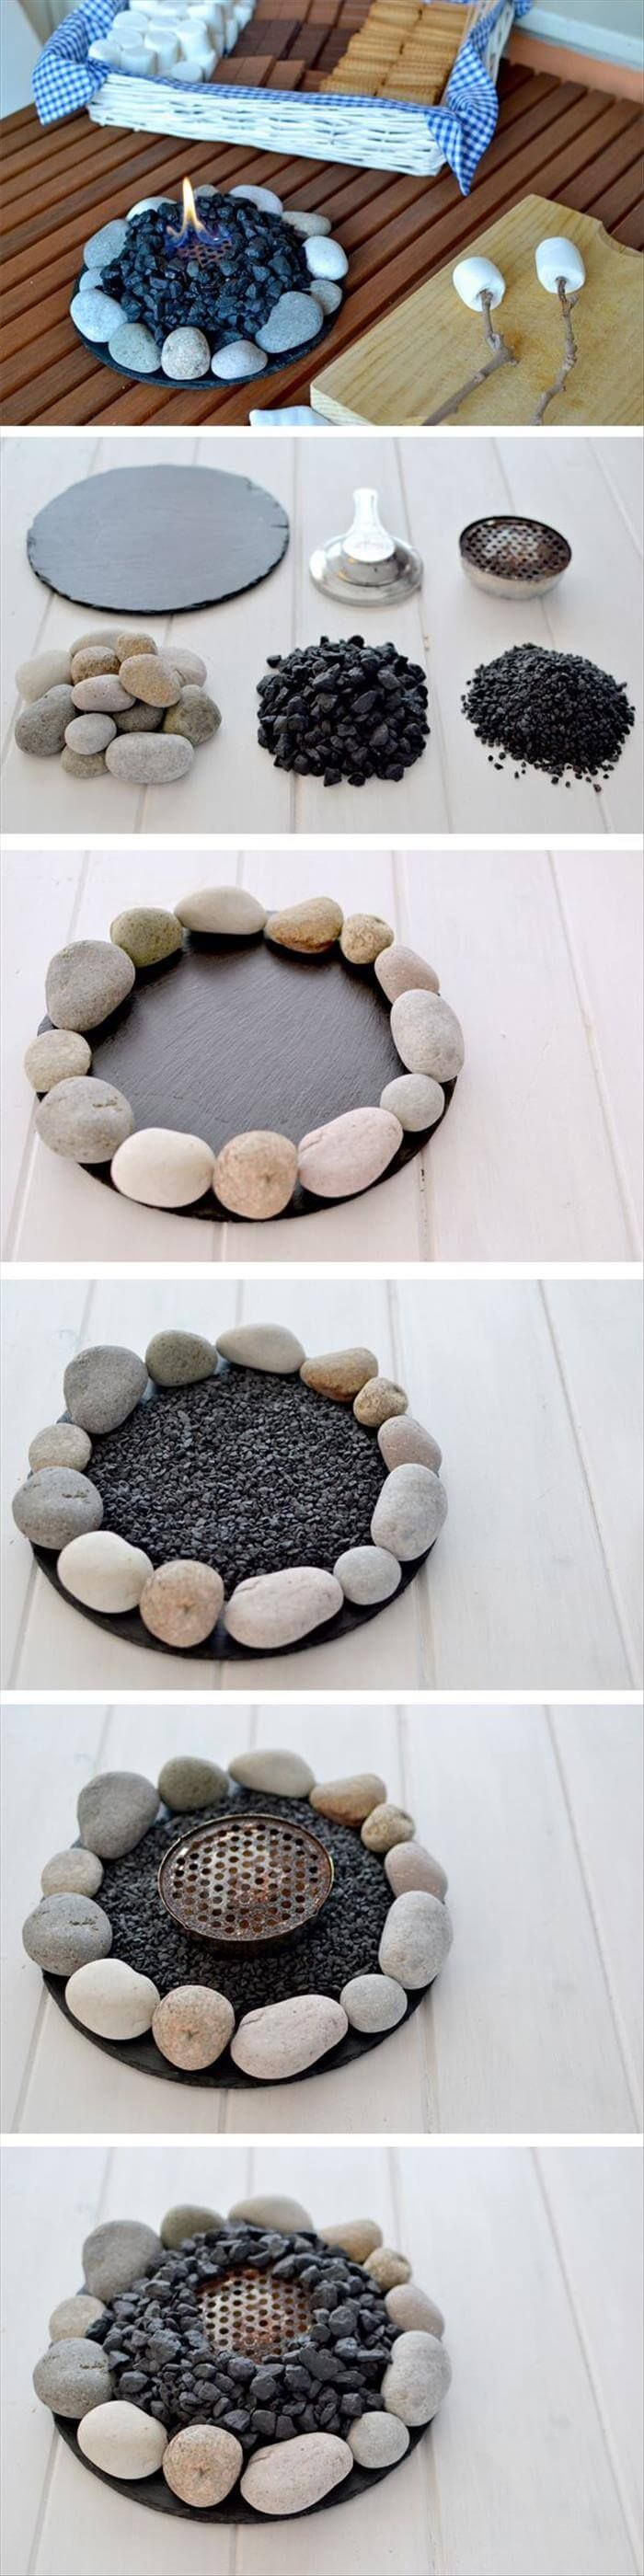 17 easy to make DIY table top fire bowls #easy #fire bowls #mache ...